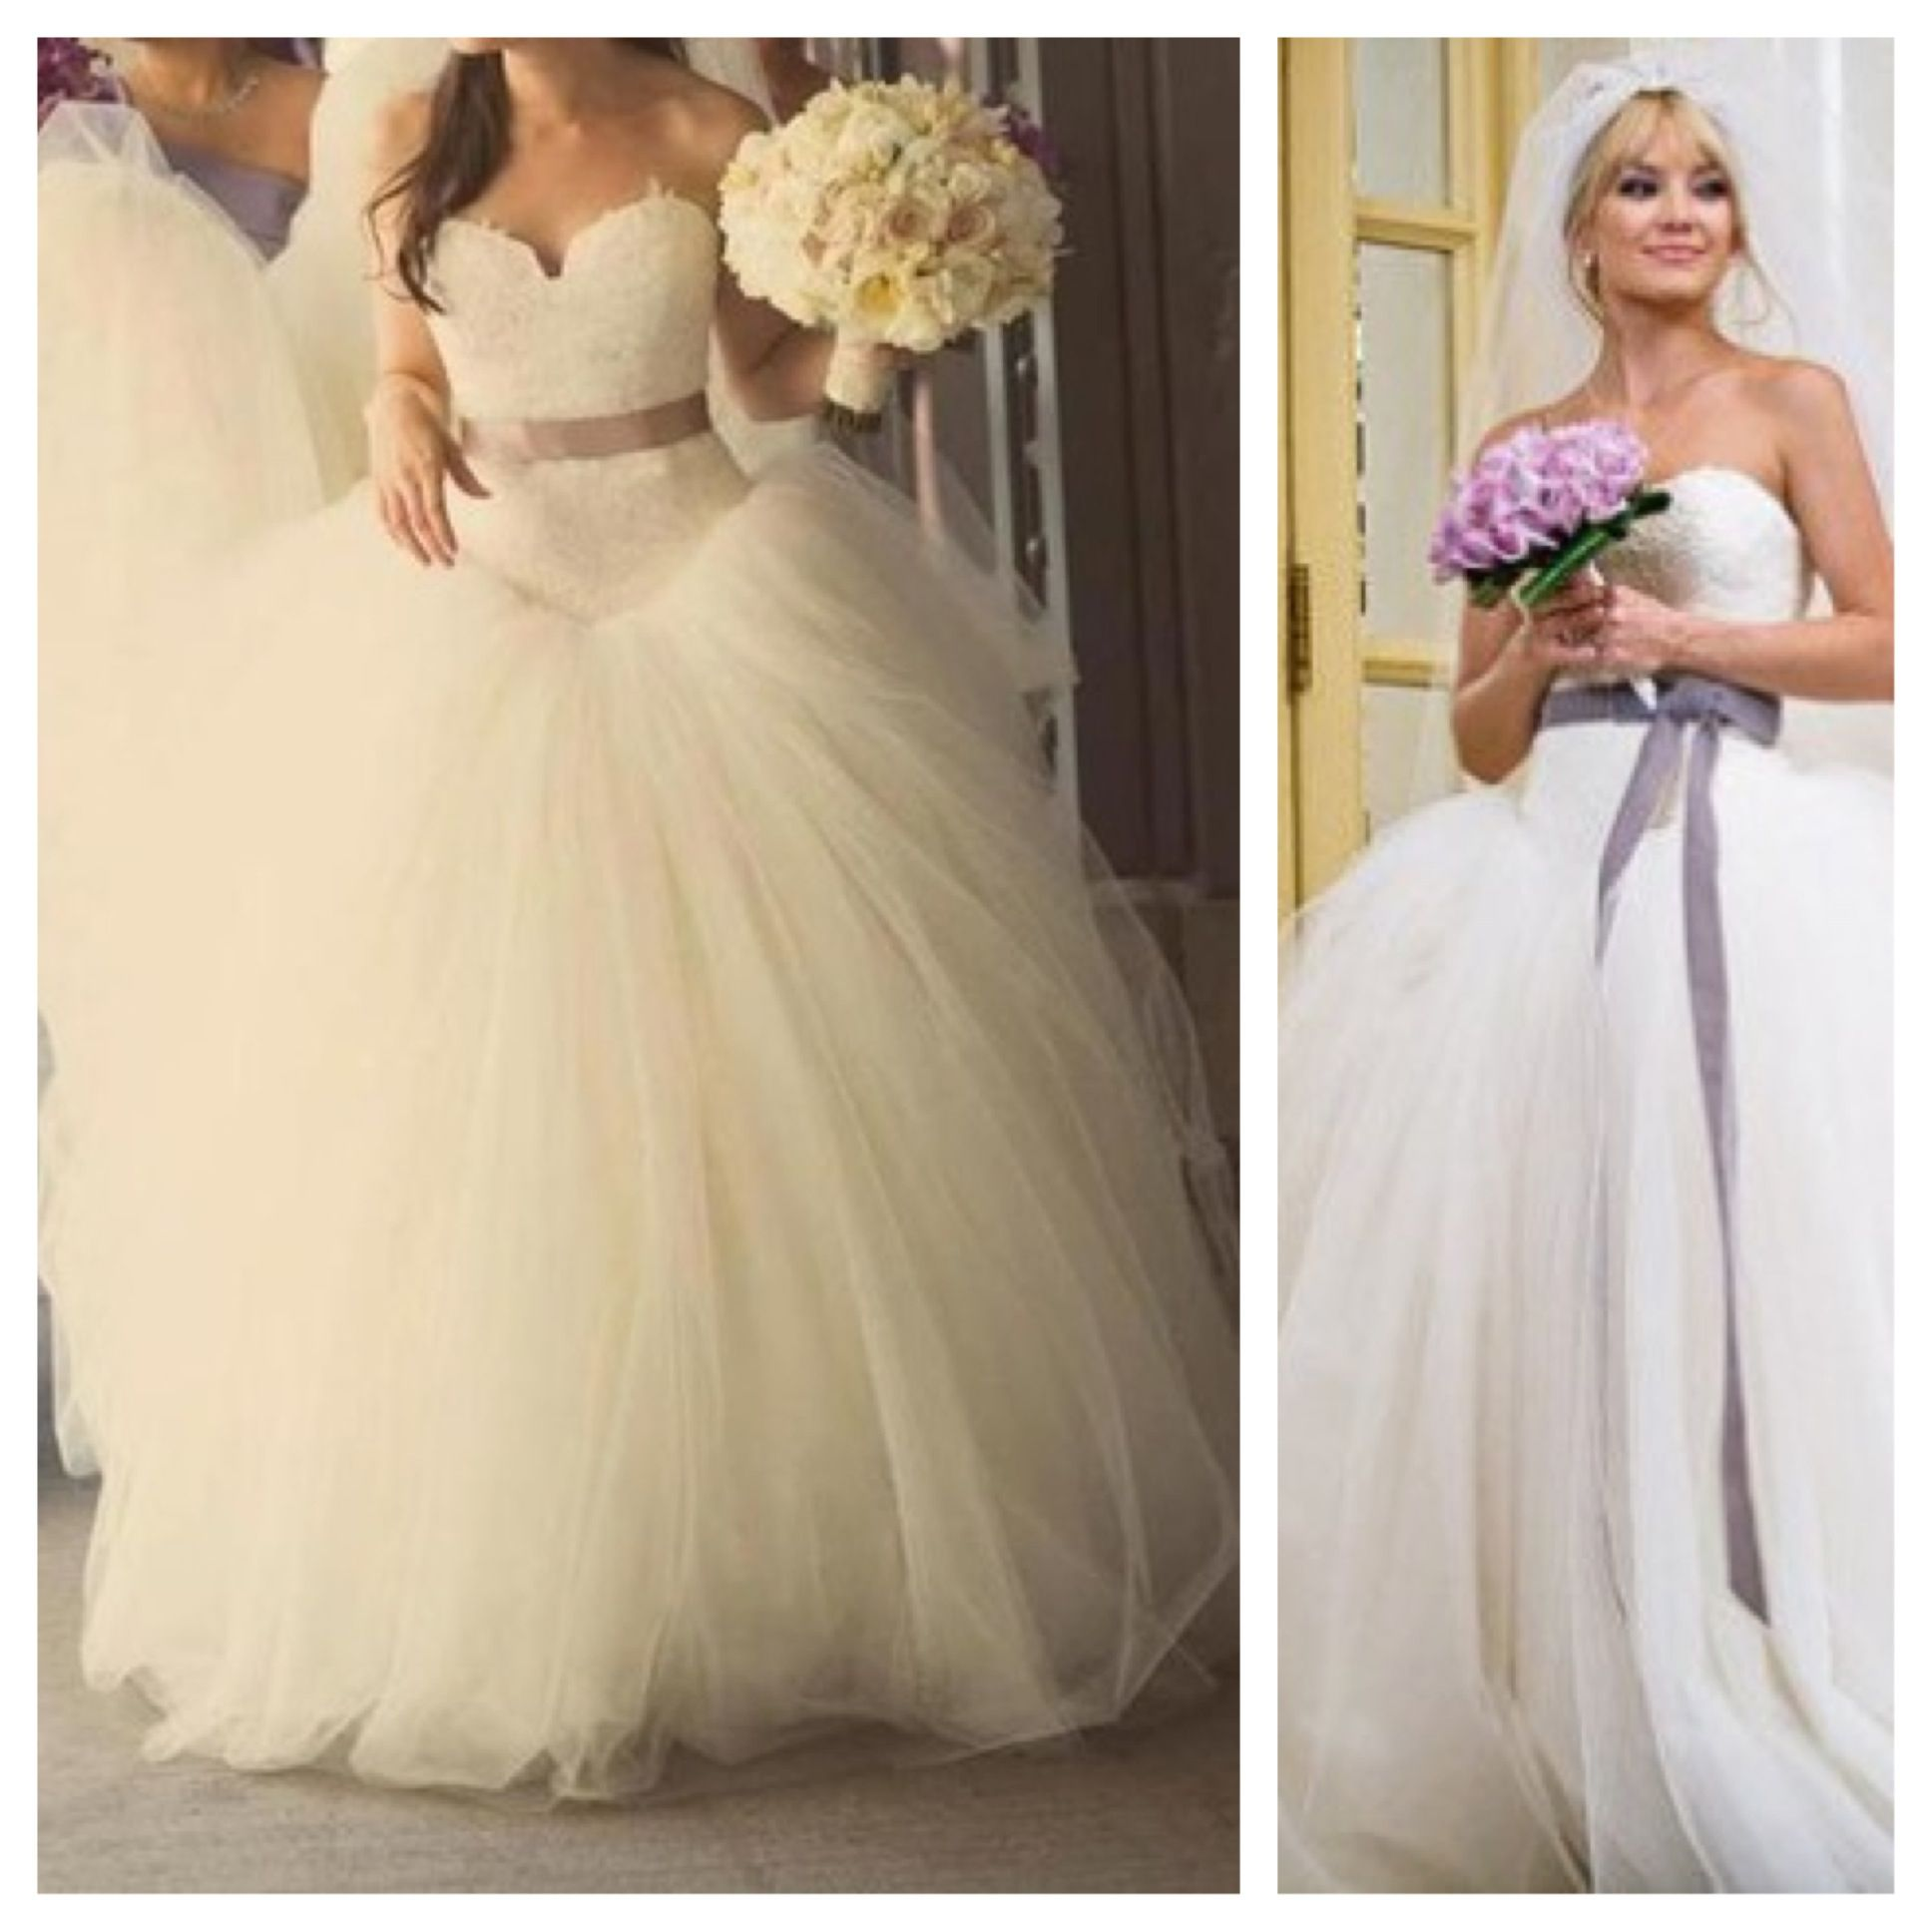 c23fb5d844e2 Love Kate Hudson's dress from Bride wars. This is my perfect dress I could  almost cry